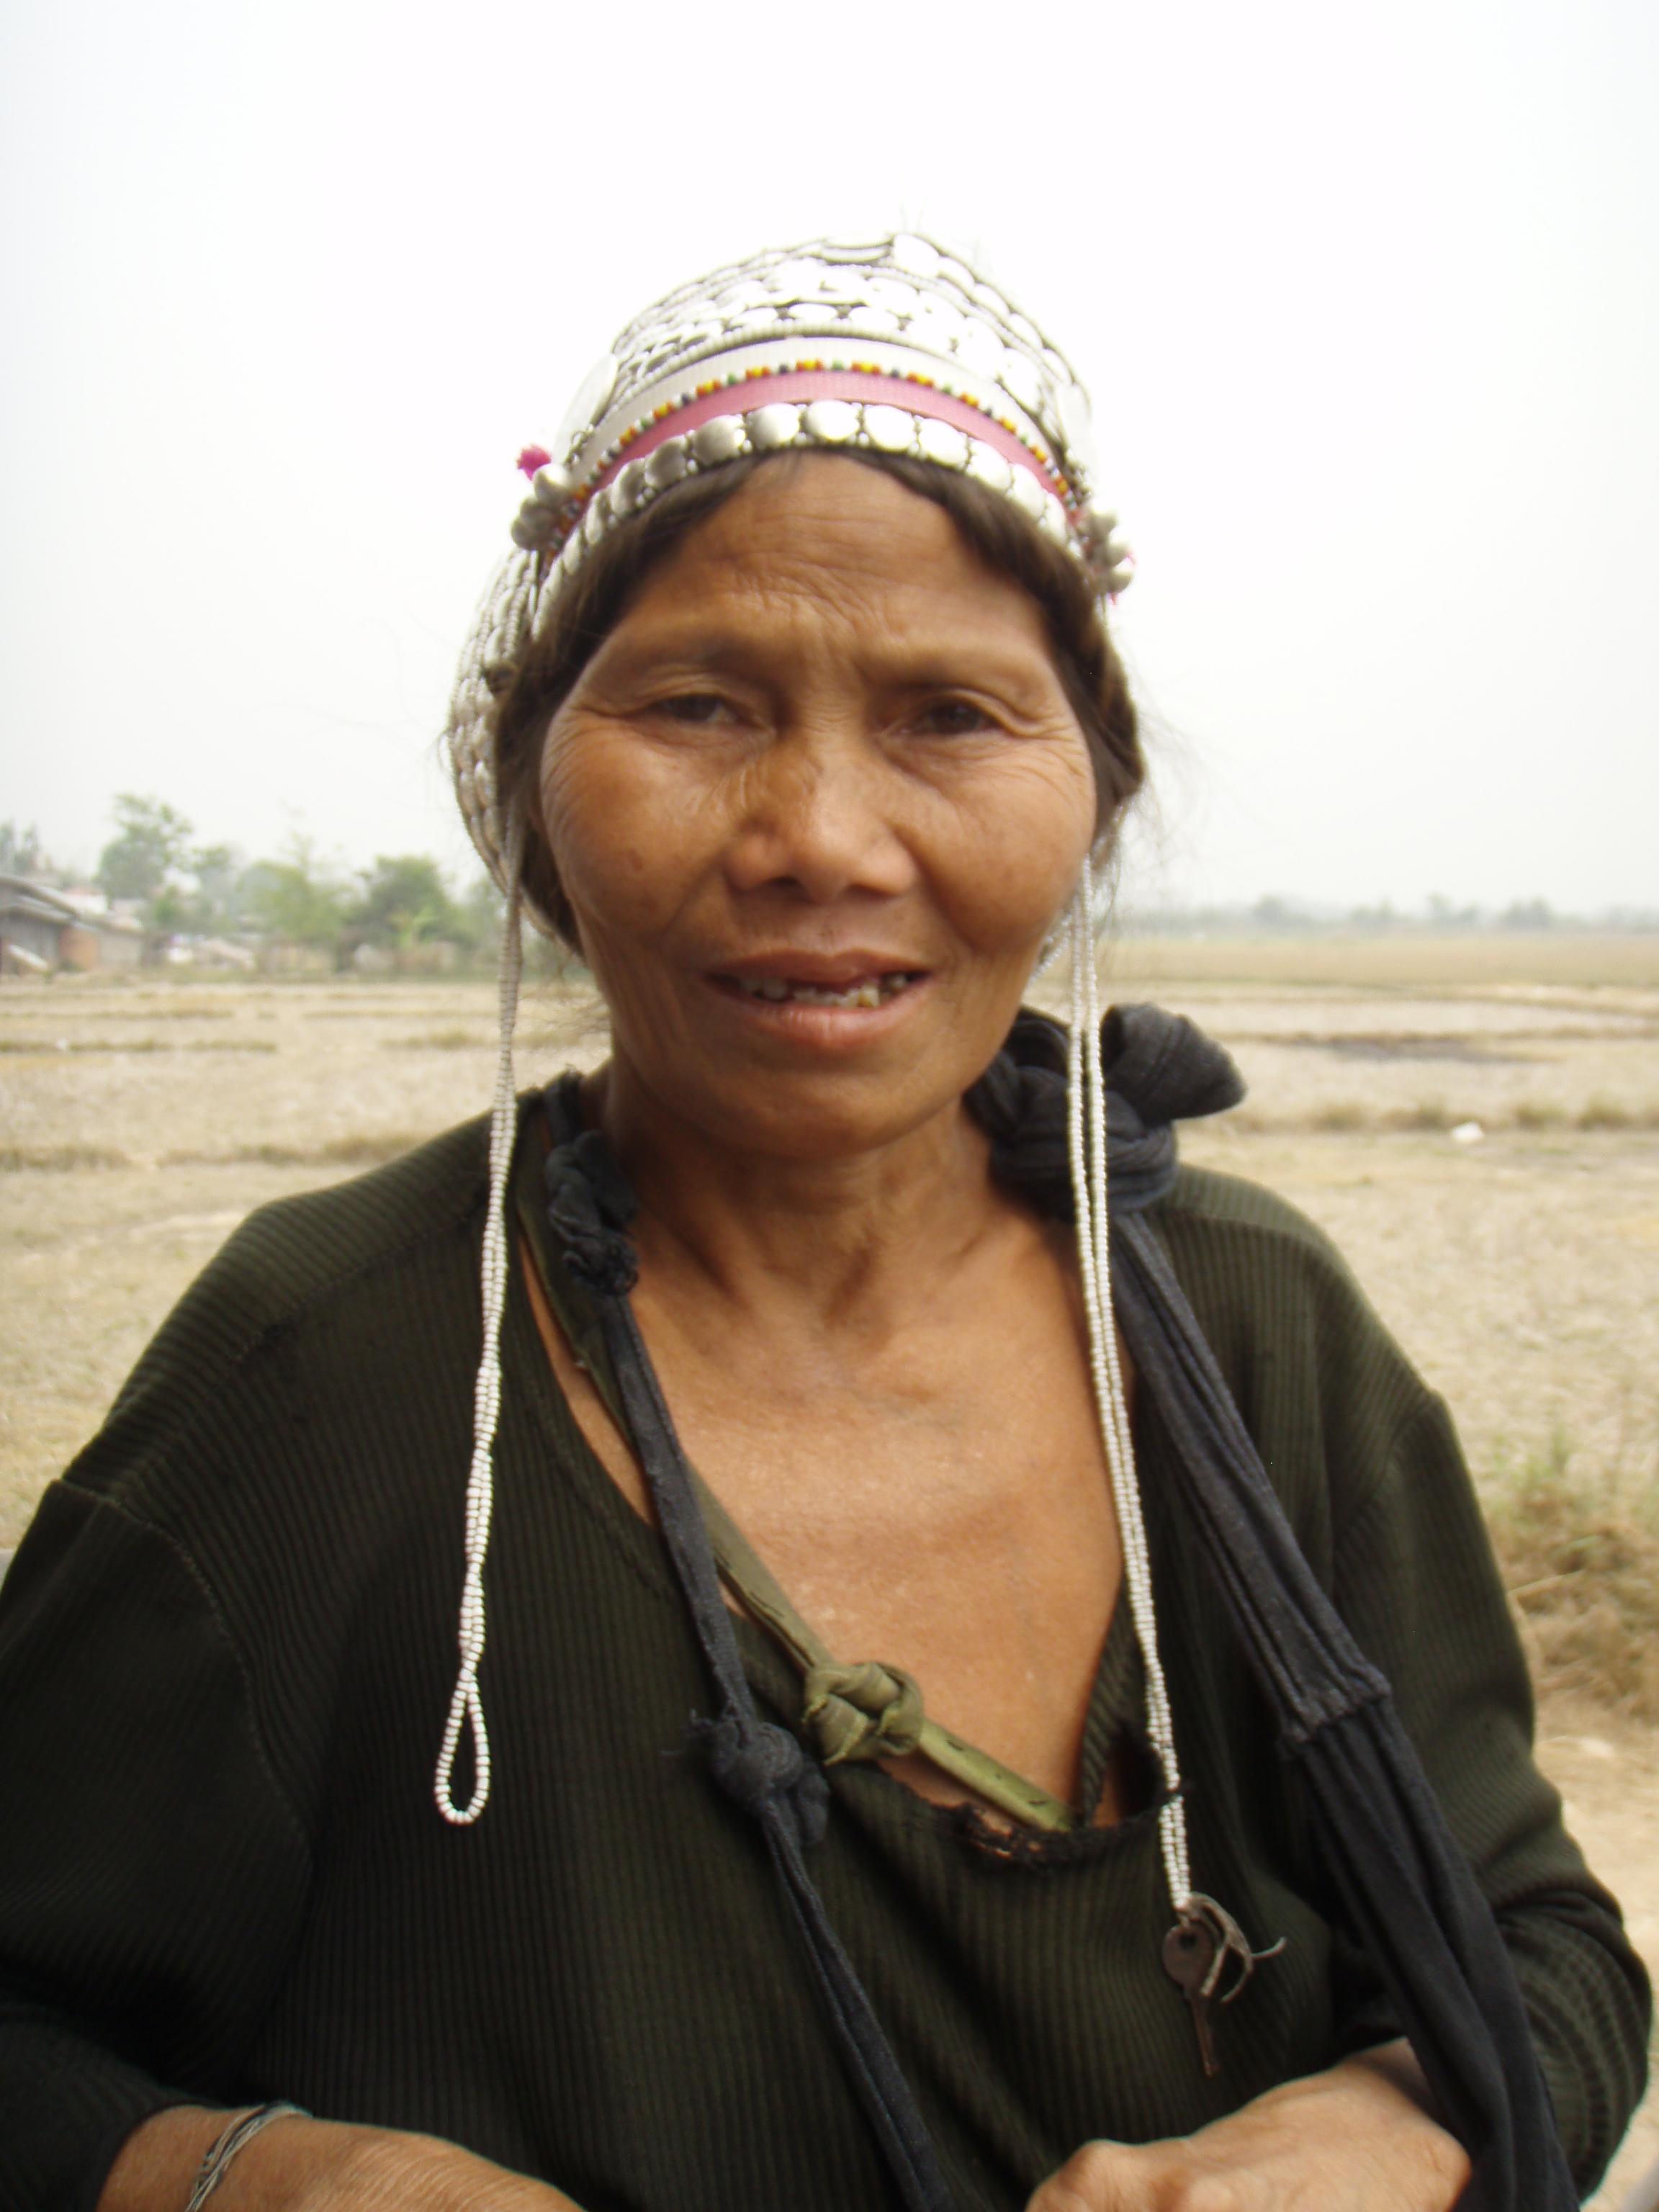 An indigenous Akha hill-tribe woman in village of Lunag Namtha in northwest Laos